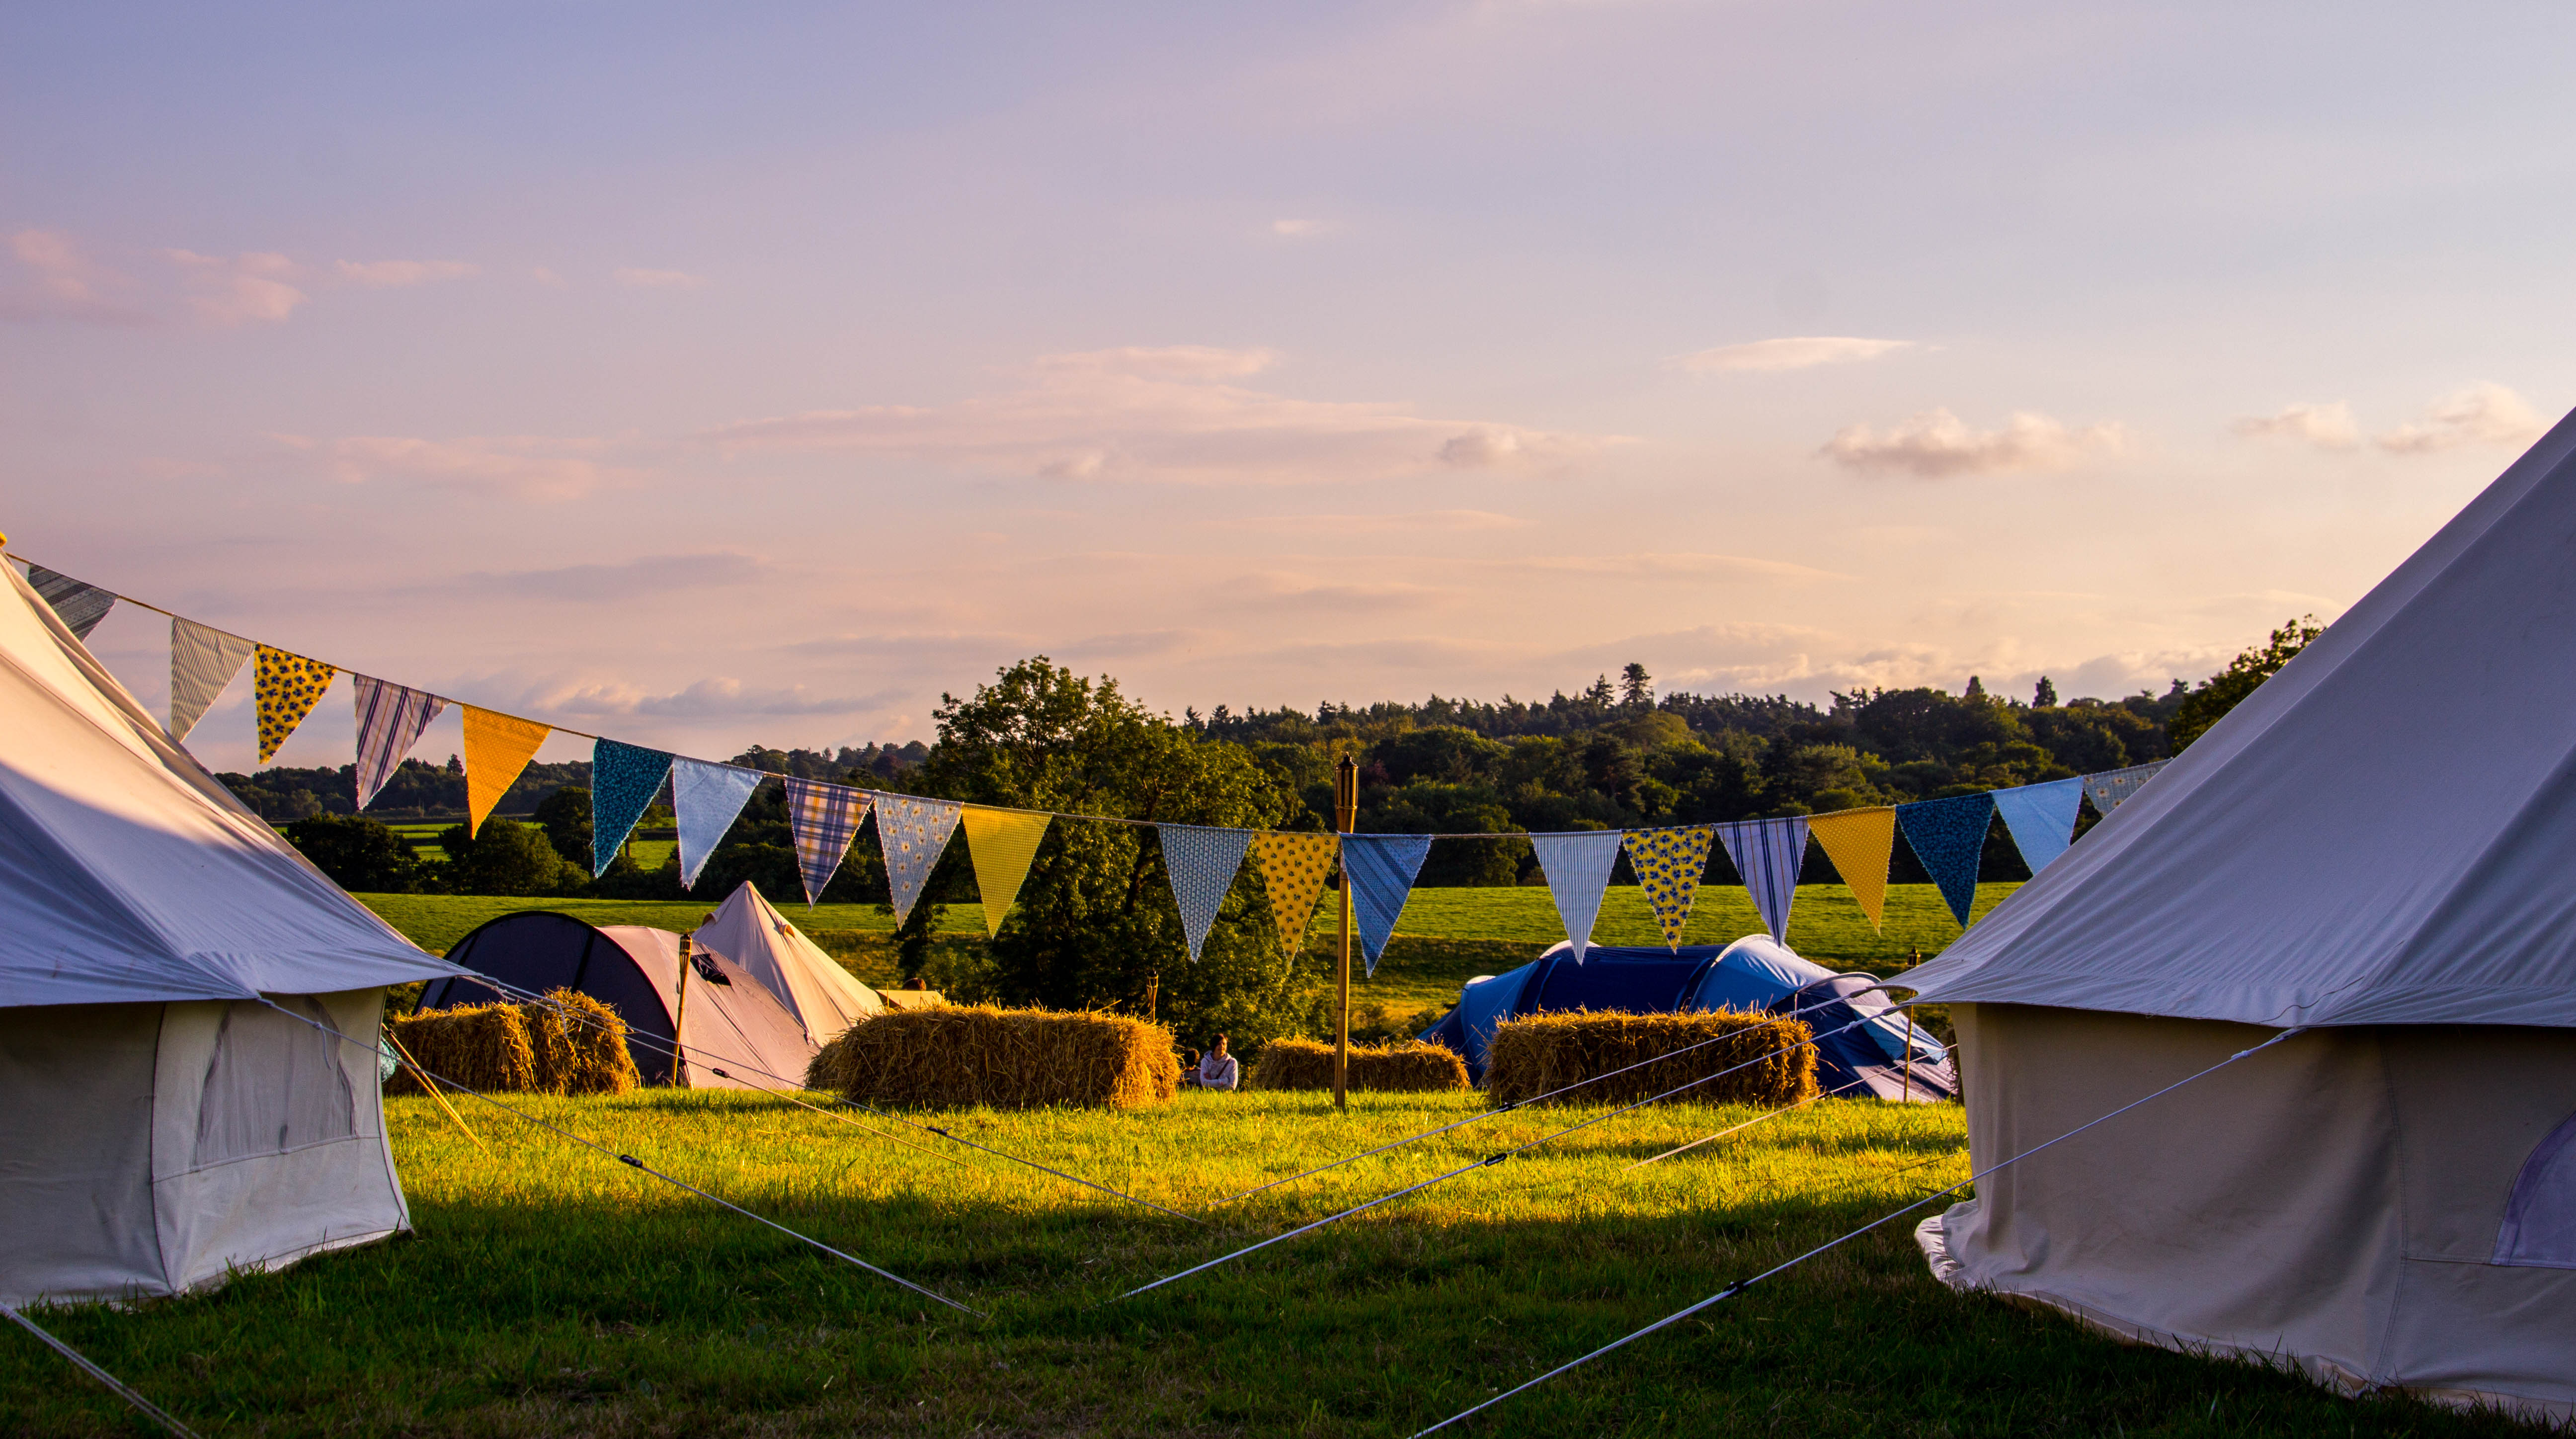 The Good Life Festival. Unusual sleepover and camping ideas family UK